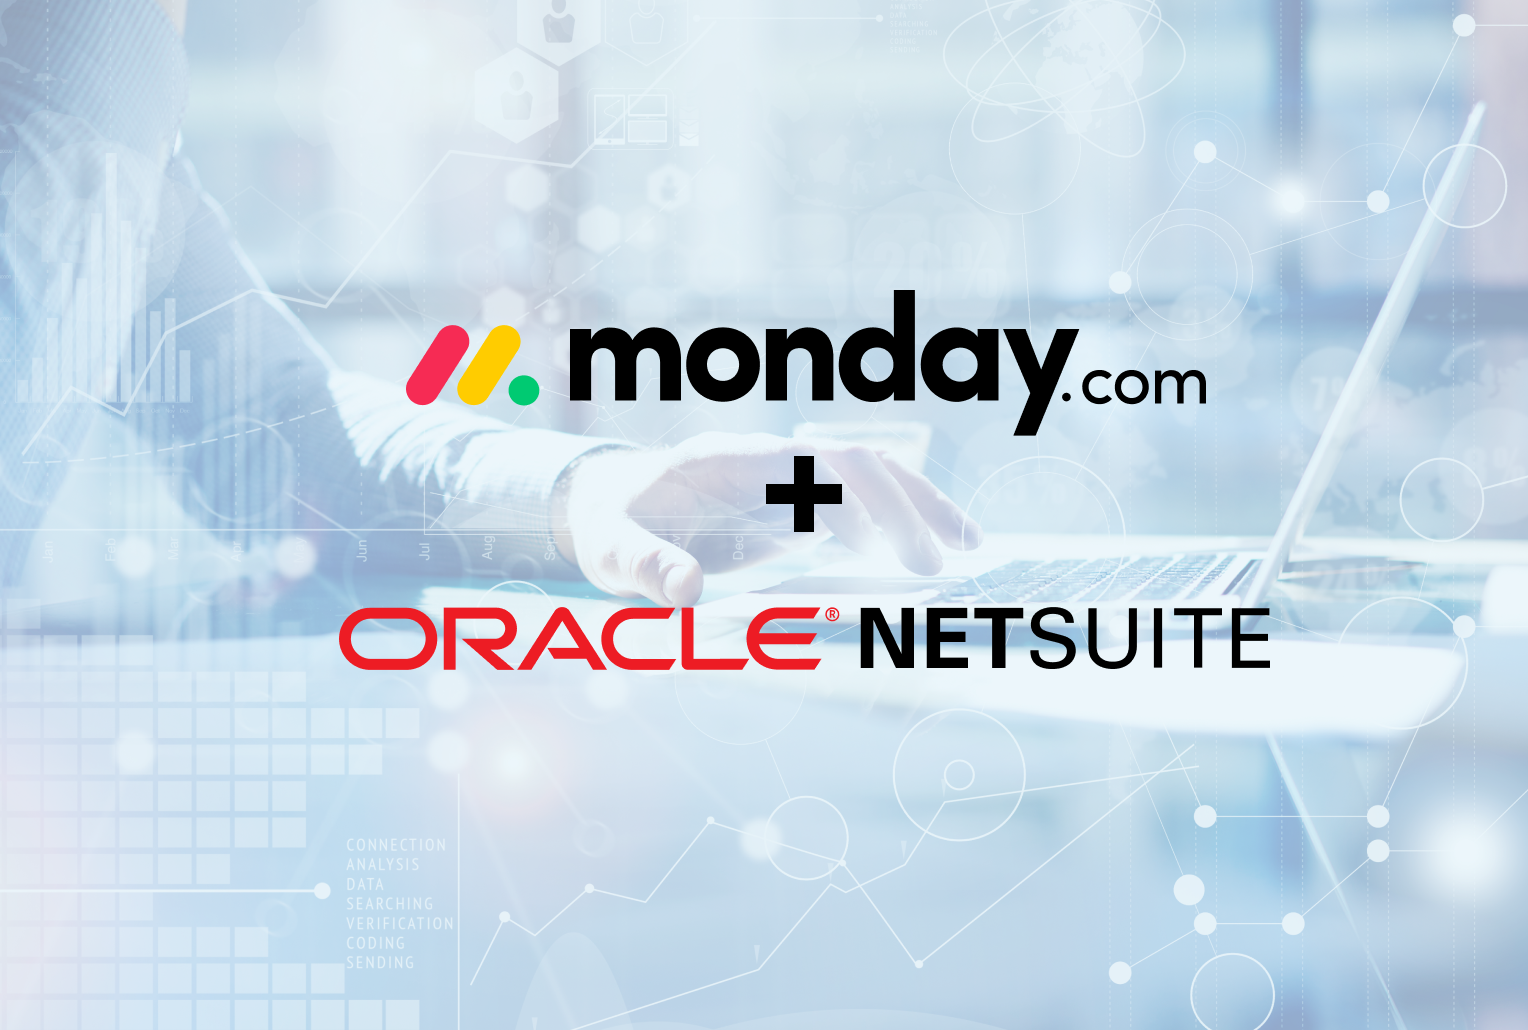 NetSuite and monday.com